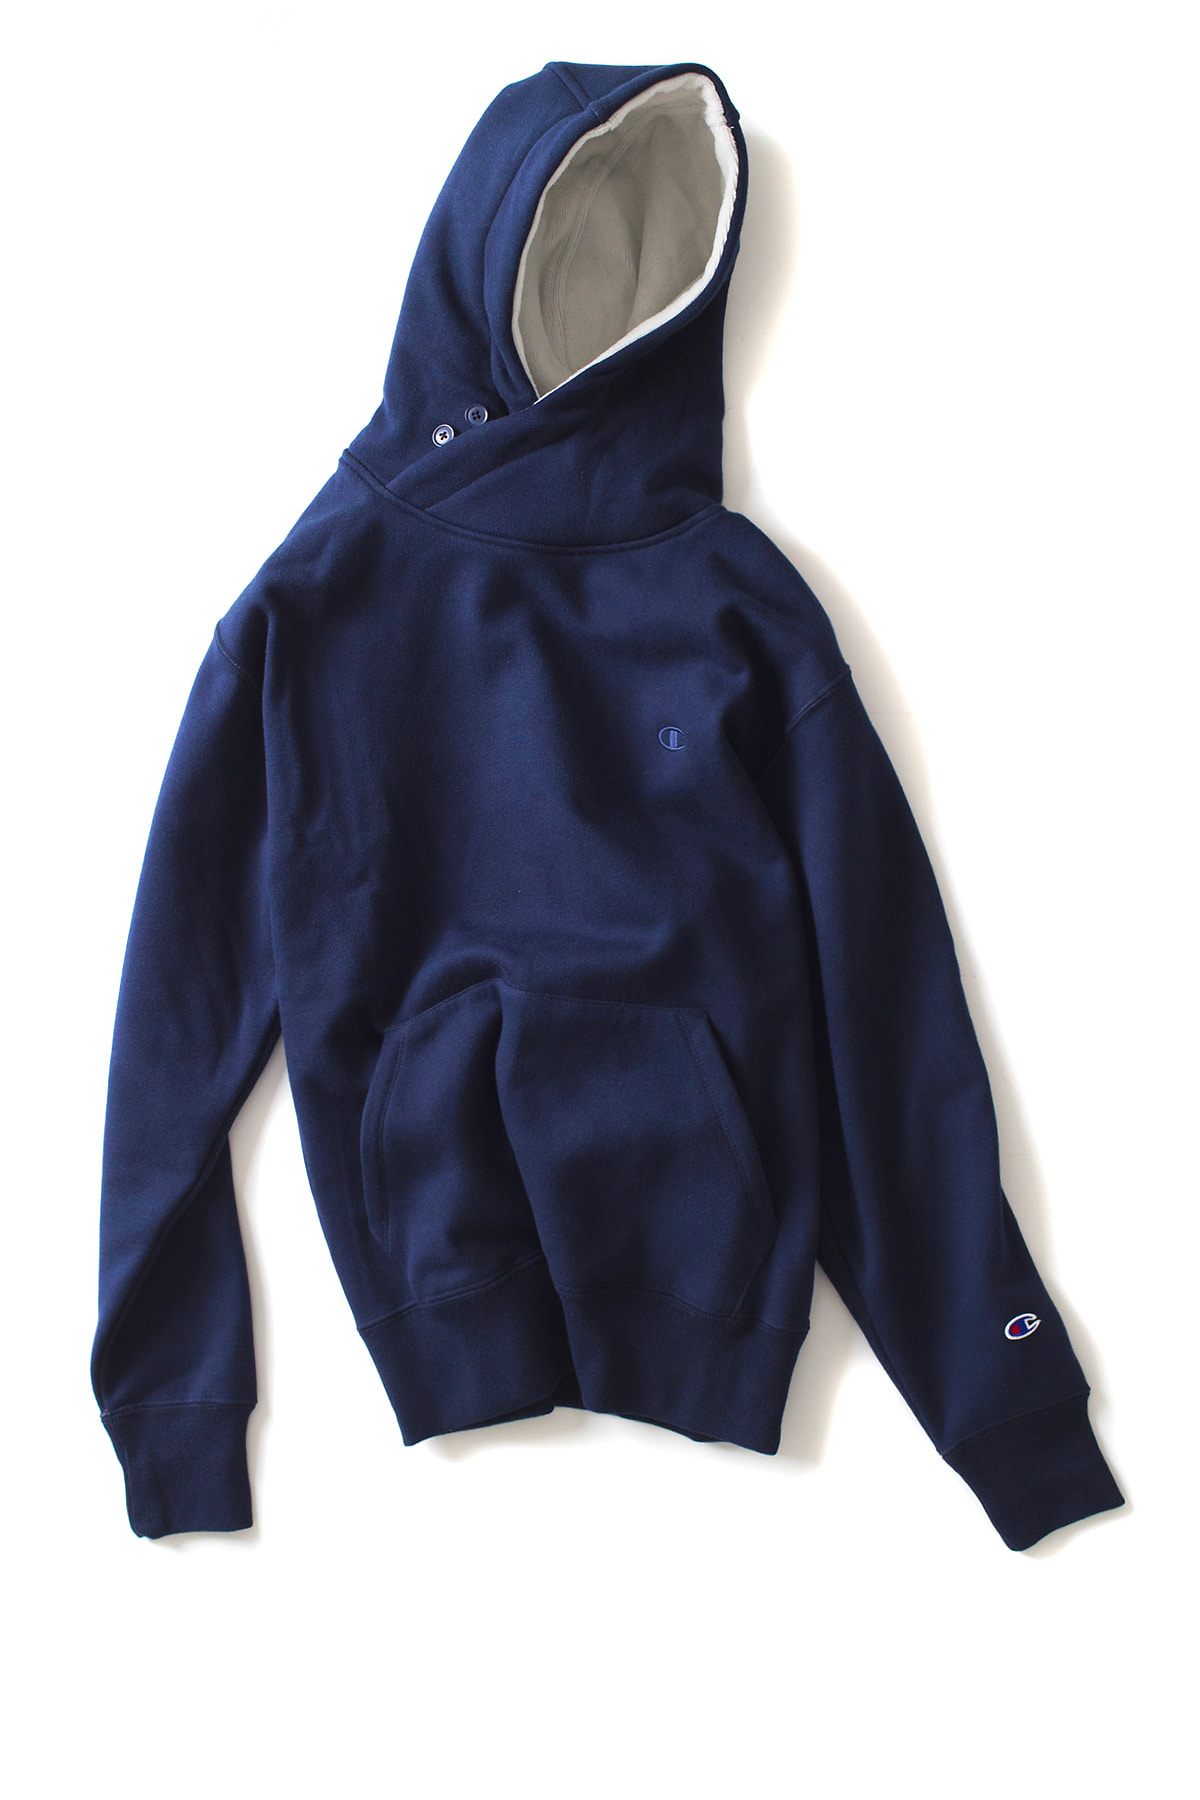 Champion : Champus Pullover Hooded Sweatshirt (Navy)